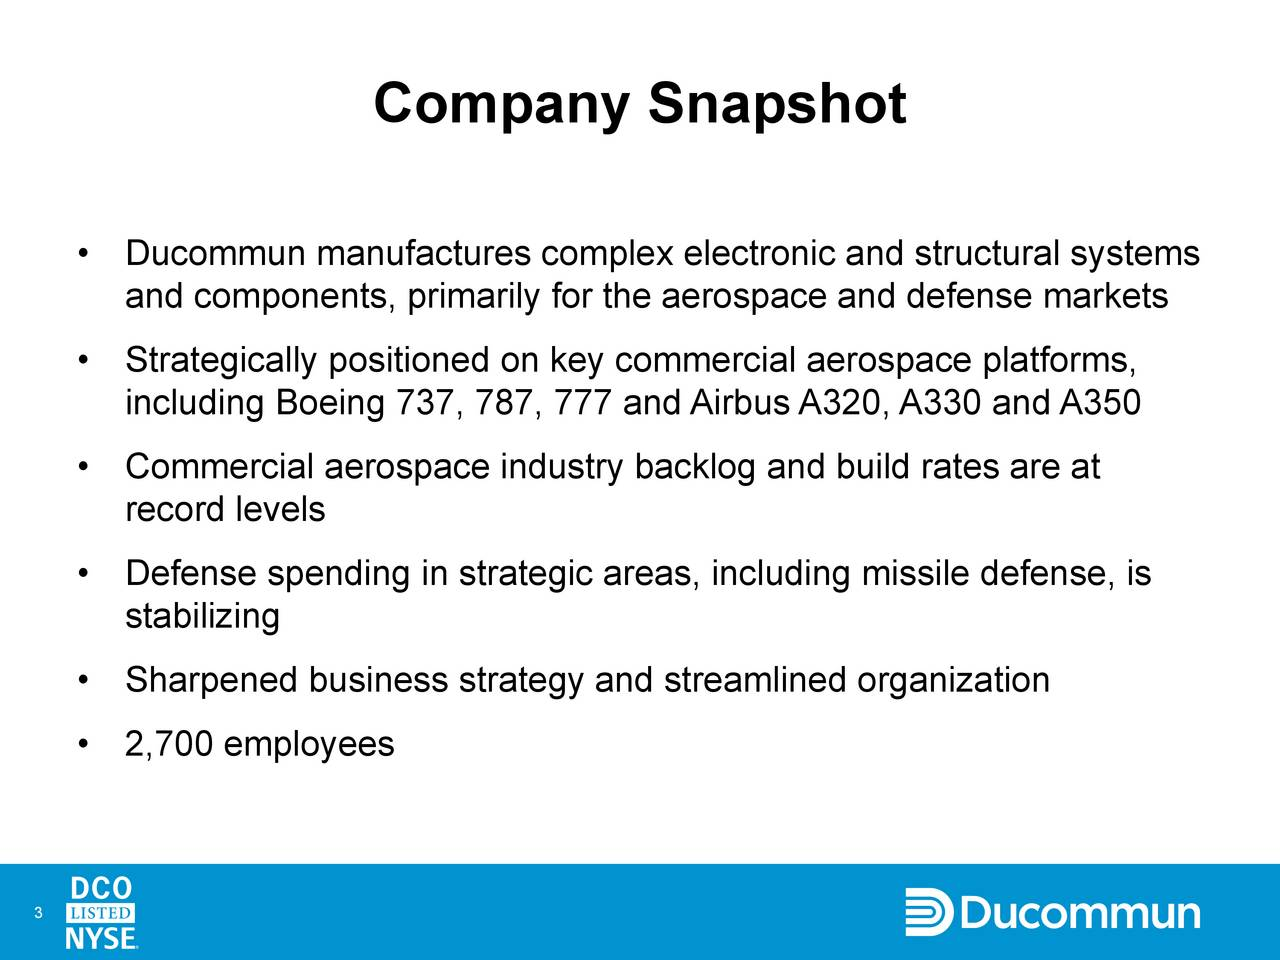 Ducommun manufactures complex electronic and structural systems and components, primarily for the aerospace and defense markets Strategically positioned on key commercial aerospace platforms, including Boeing 737, 787, 777 and Airbus A320, A330 and A350 Commercial aerospace industry backlog and build rates are at record levels Defense spending in strategic areas, including missile defense, is stabilizing Sharpened business strategy and streamlined organization 2,700 employees 3